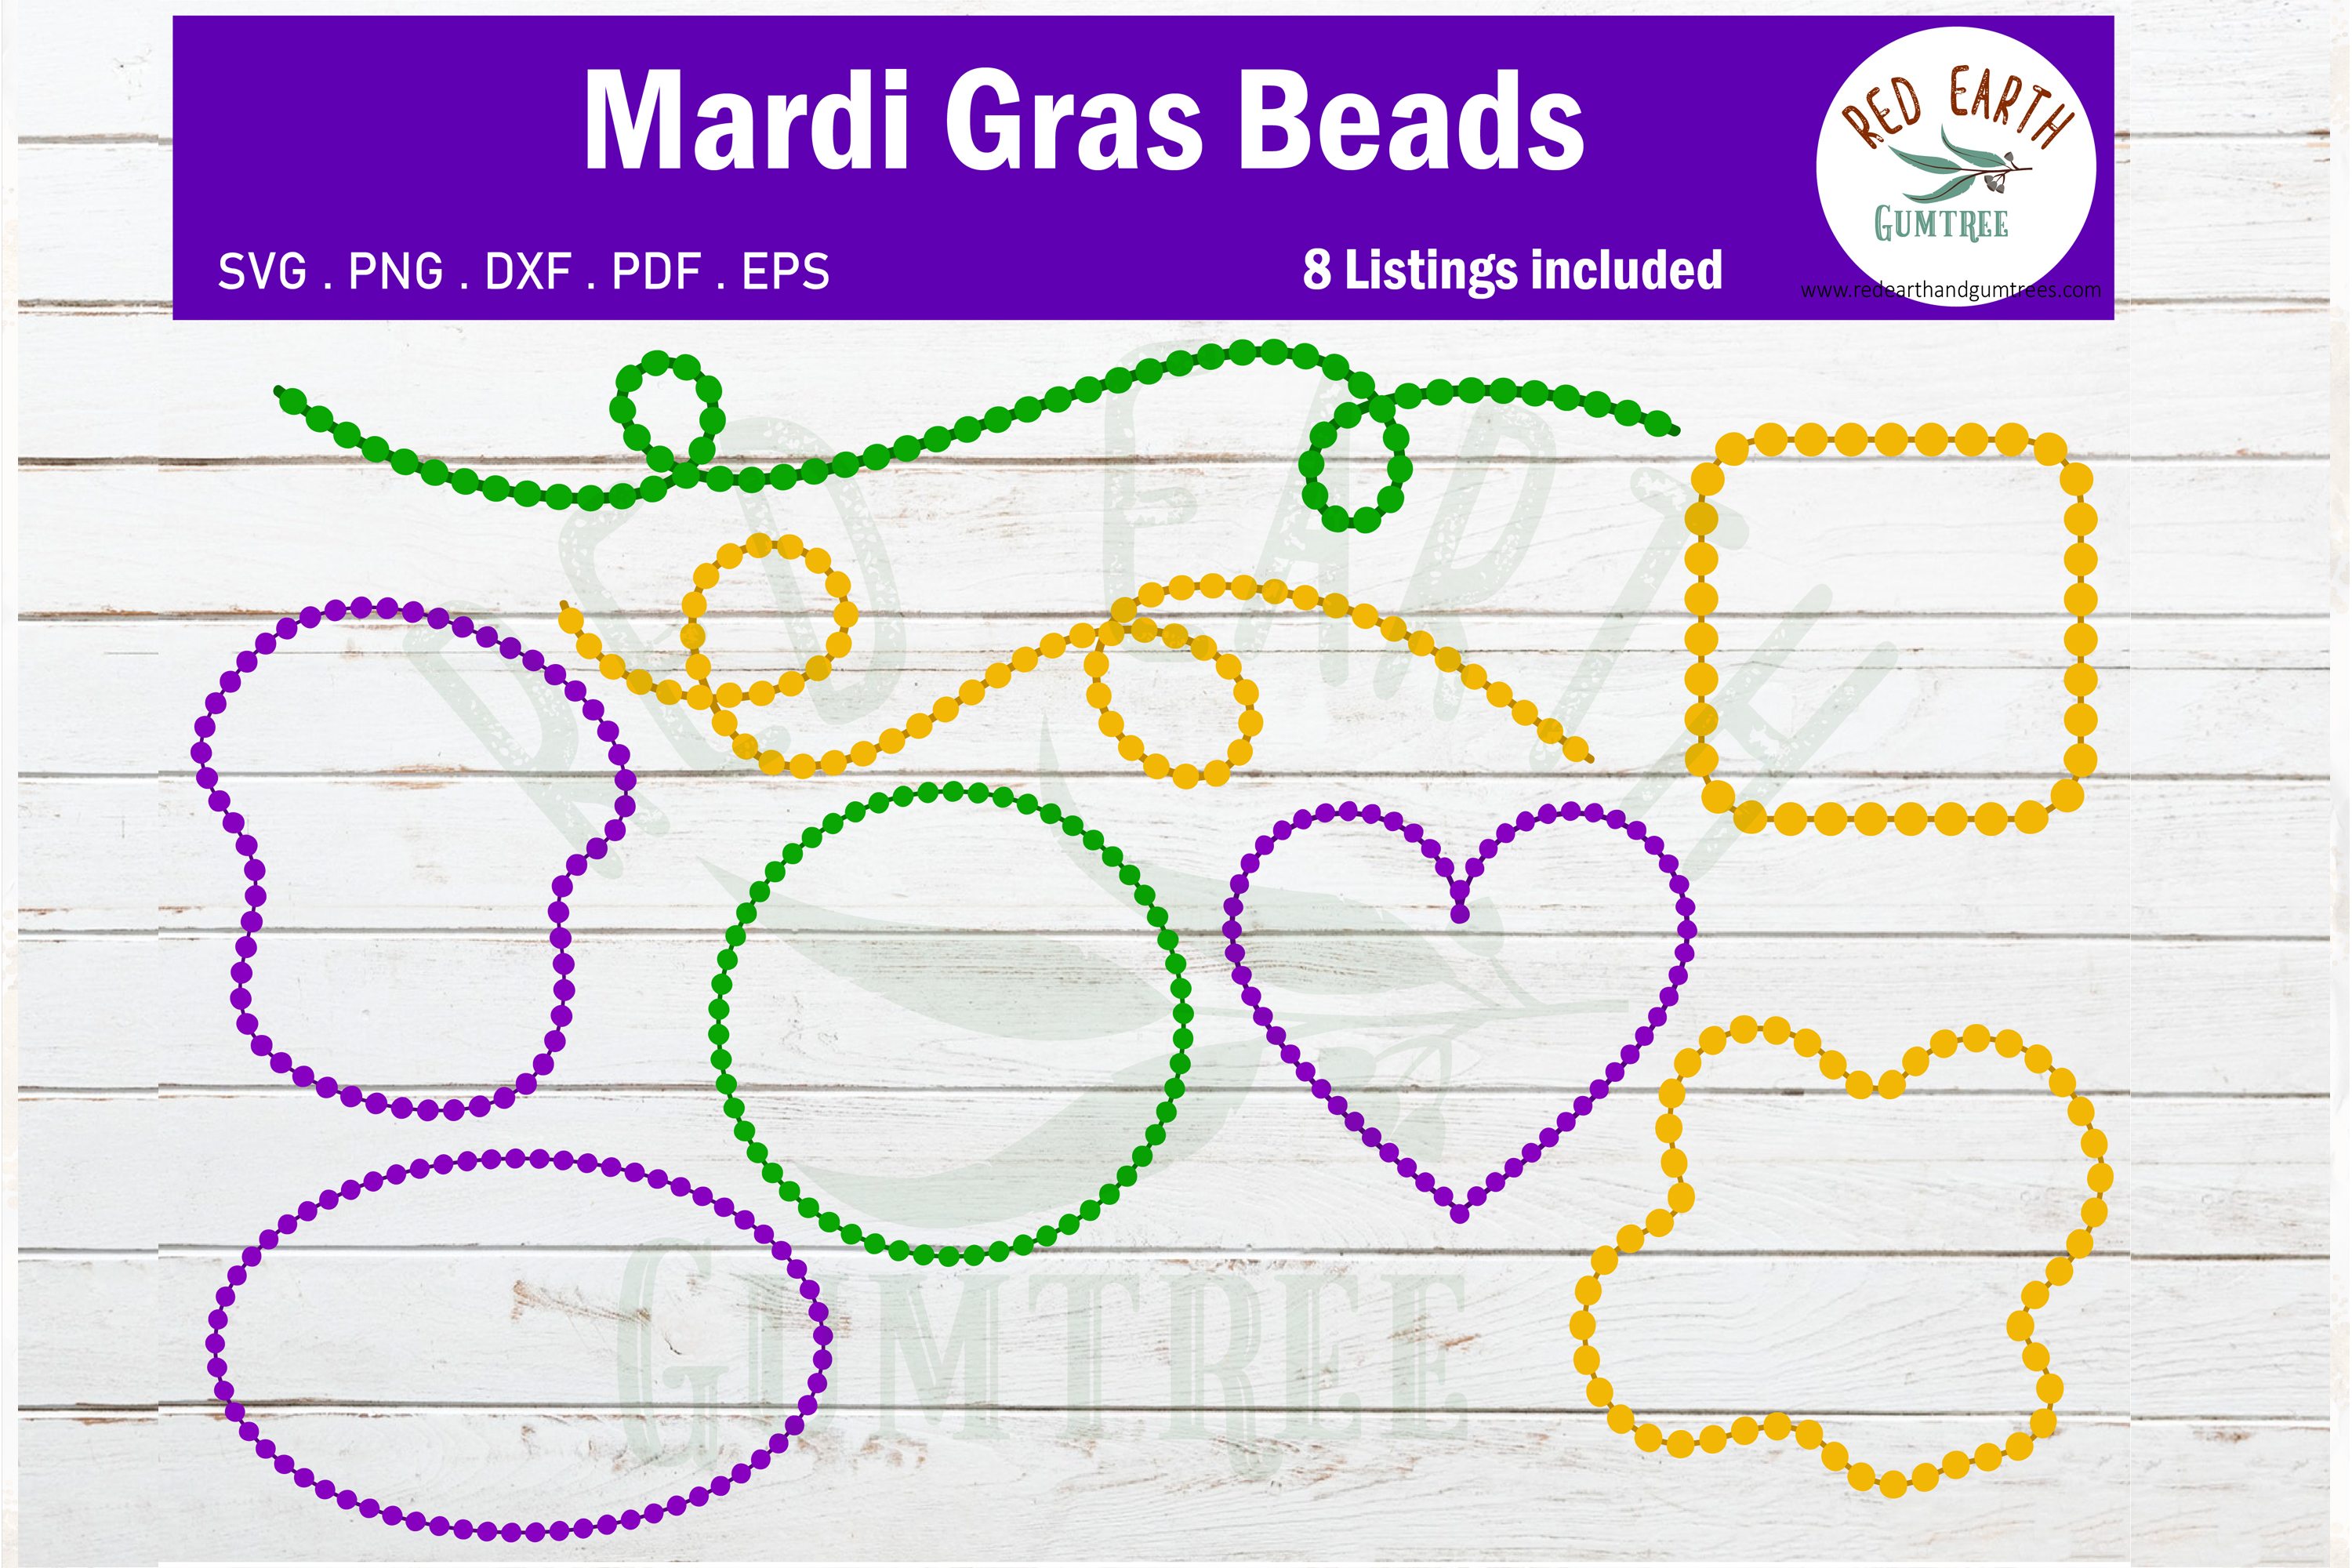 Download Free Mardi Gras Beads Bundle Graphic By Redearth And Gumtrees for Cricut Explore, Silhouette and other cutting machines.